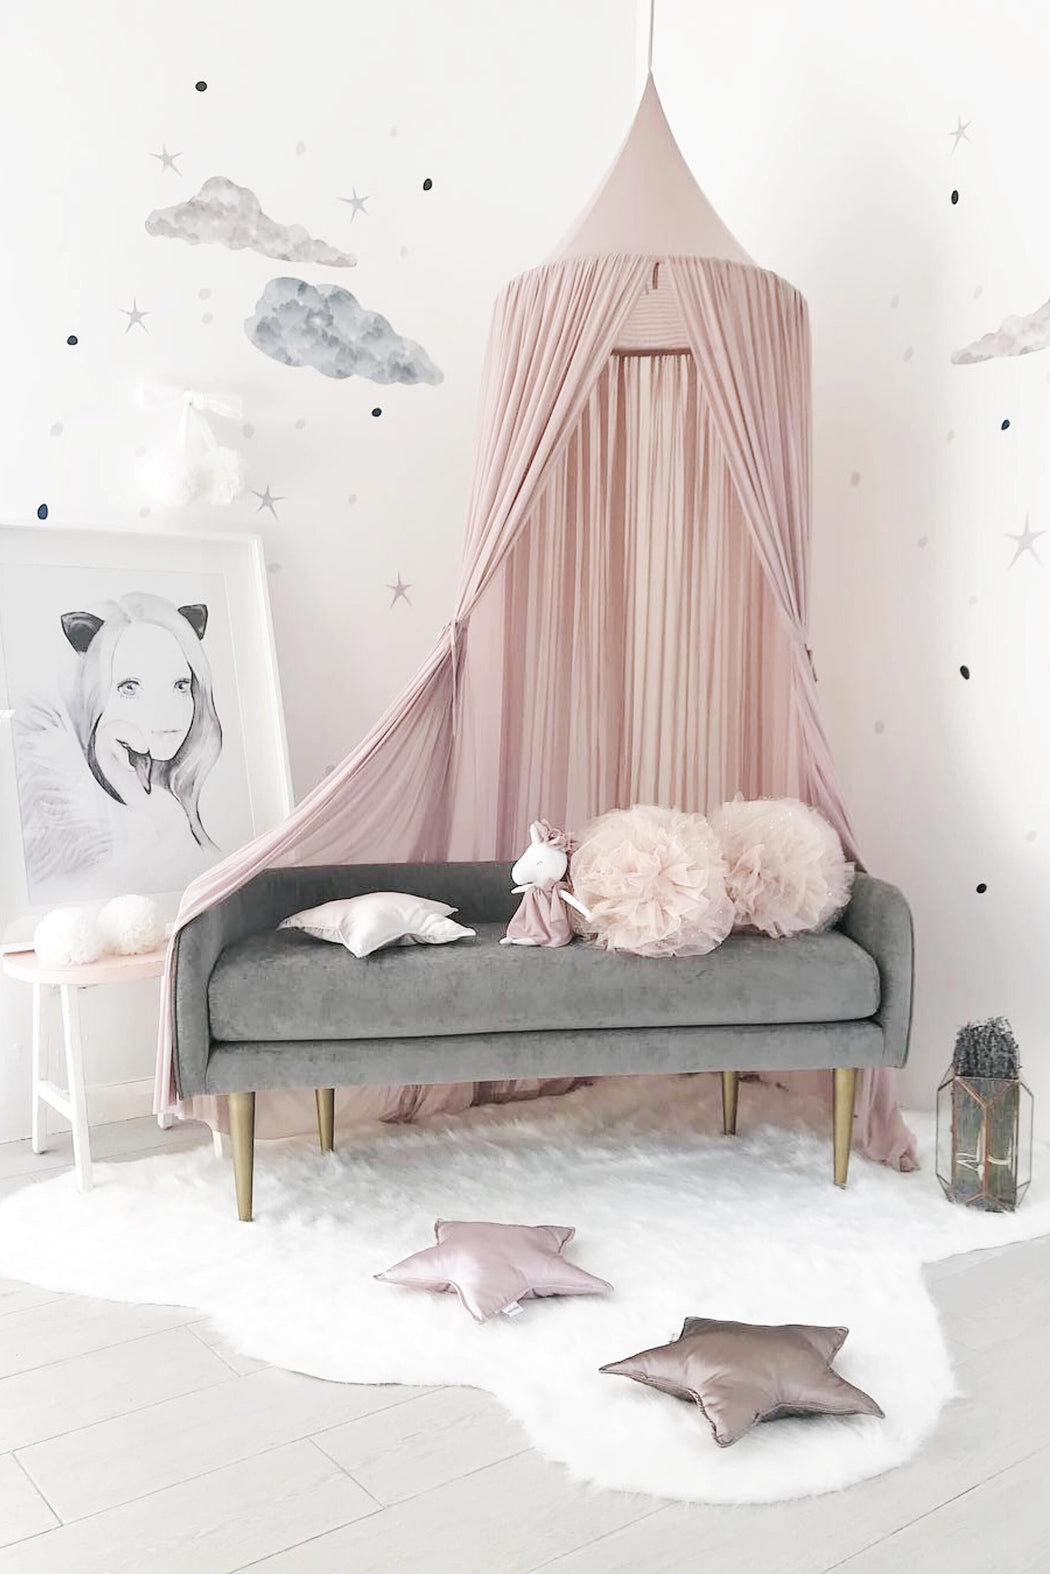 PRE-ORDER: Old Rose Sheer Canopy, Decor, Spinkie - 3LittlePicks